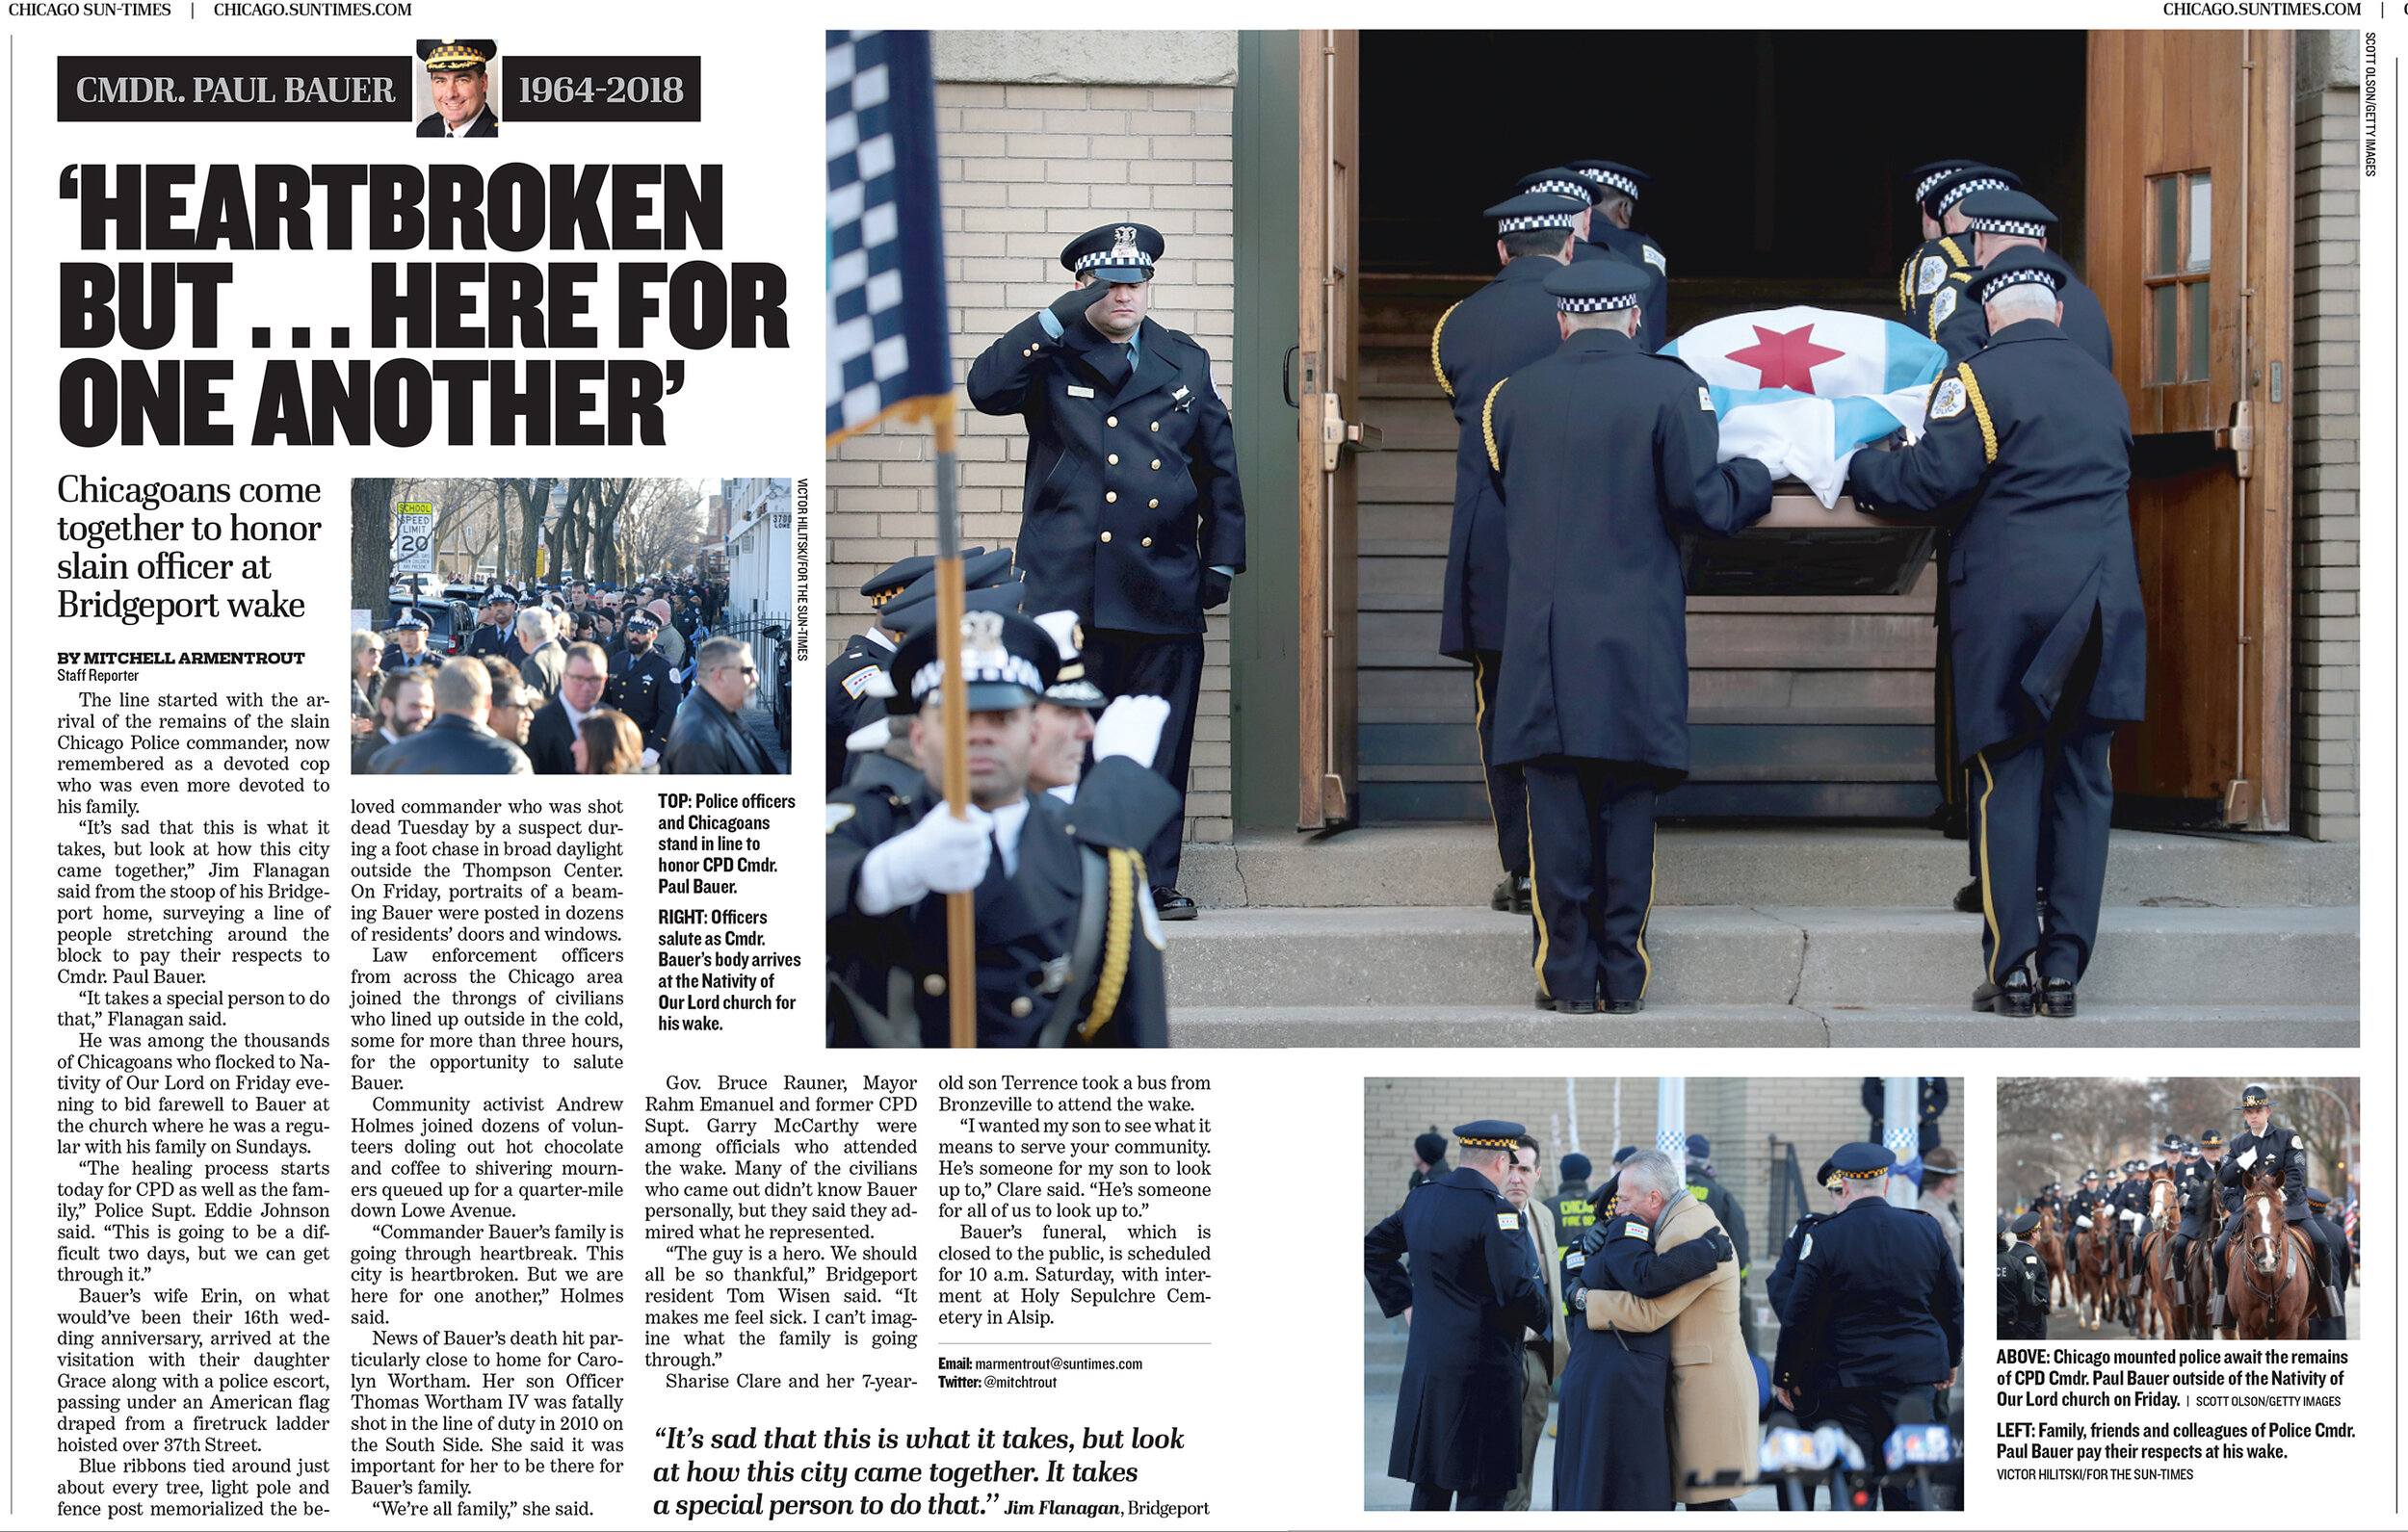 A memorial service for Police Cmdr. Paul Bauer. For the Chicago Sun-Times , 2017